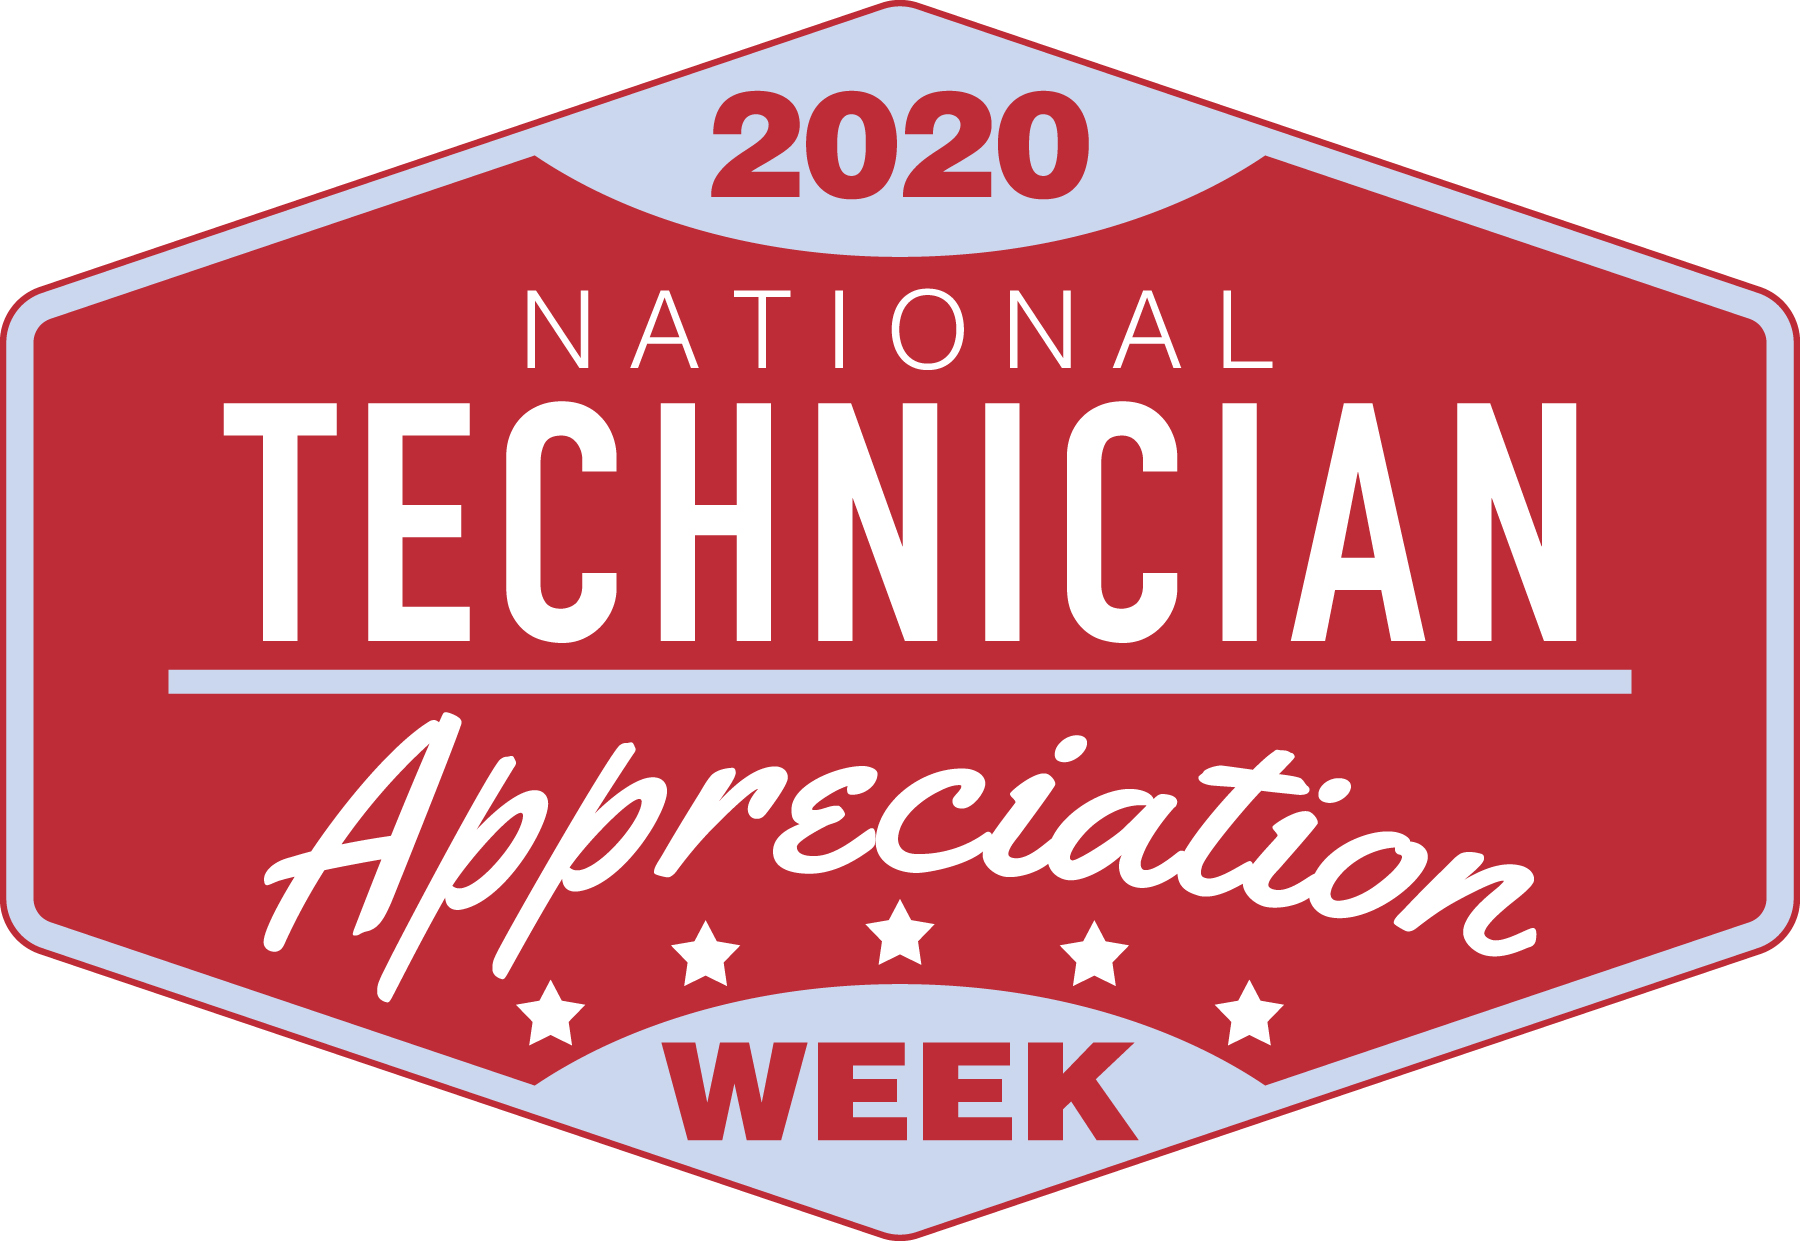 National Technician Appreciation Week September 21-25, 2020